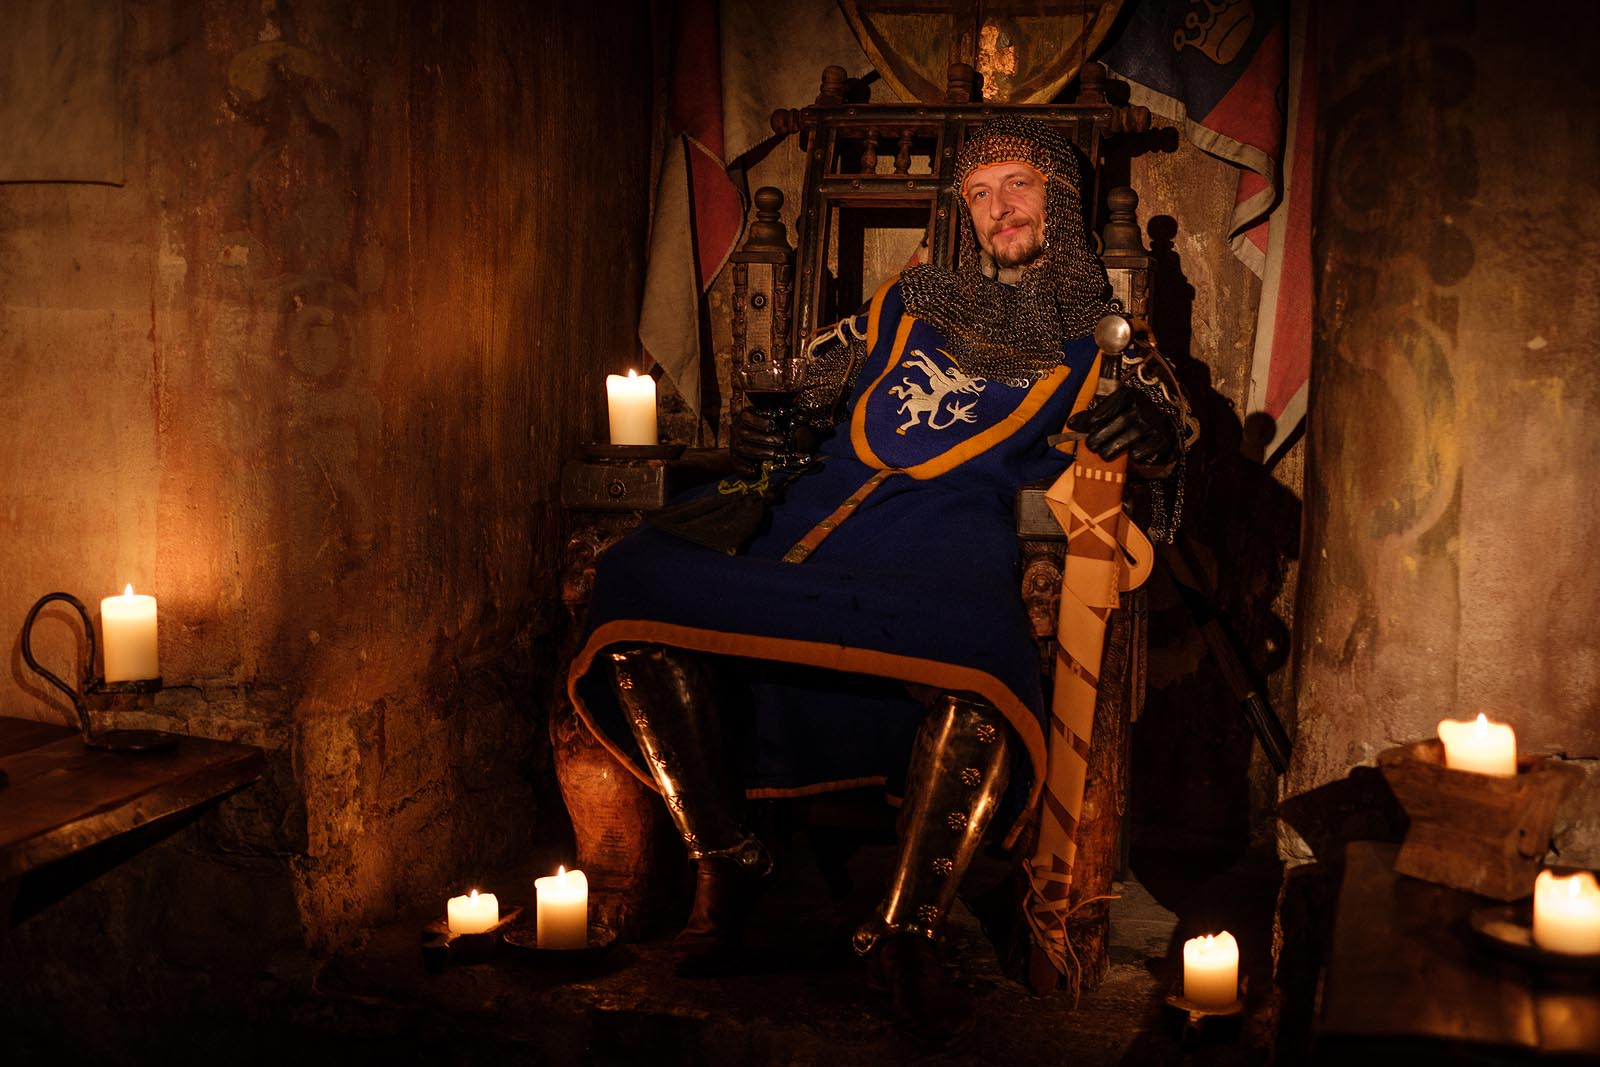 Content King Sitting on Throne